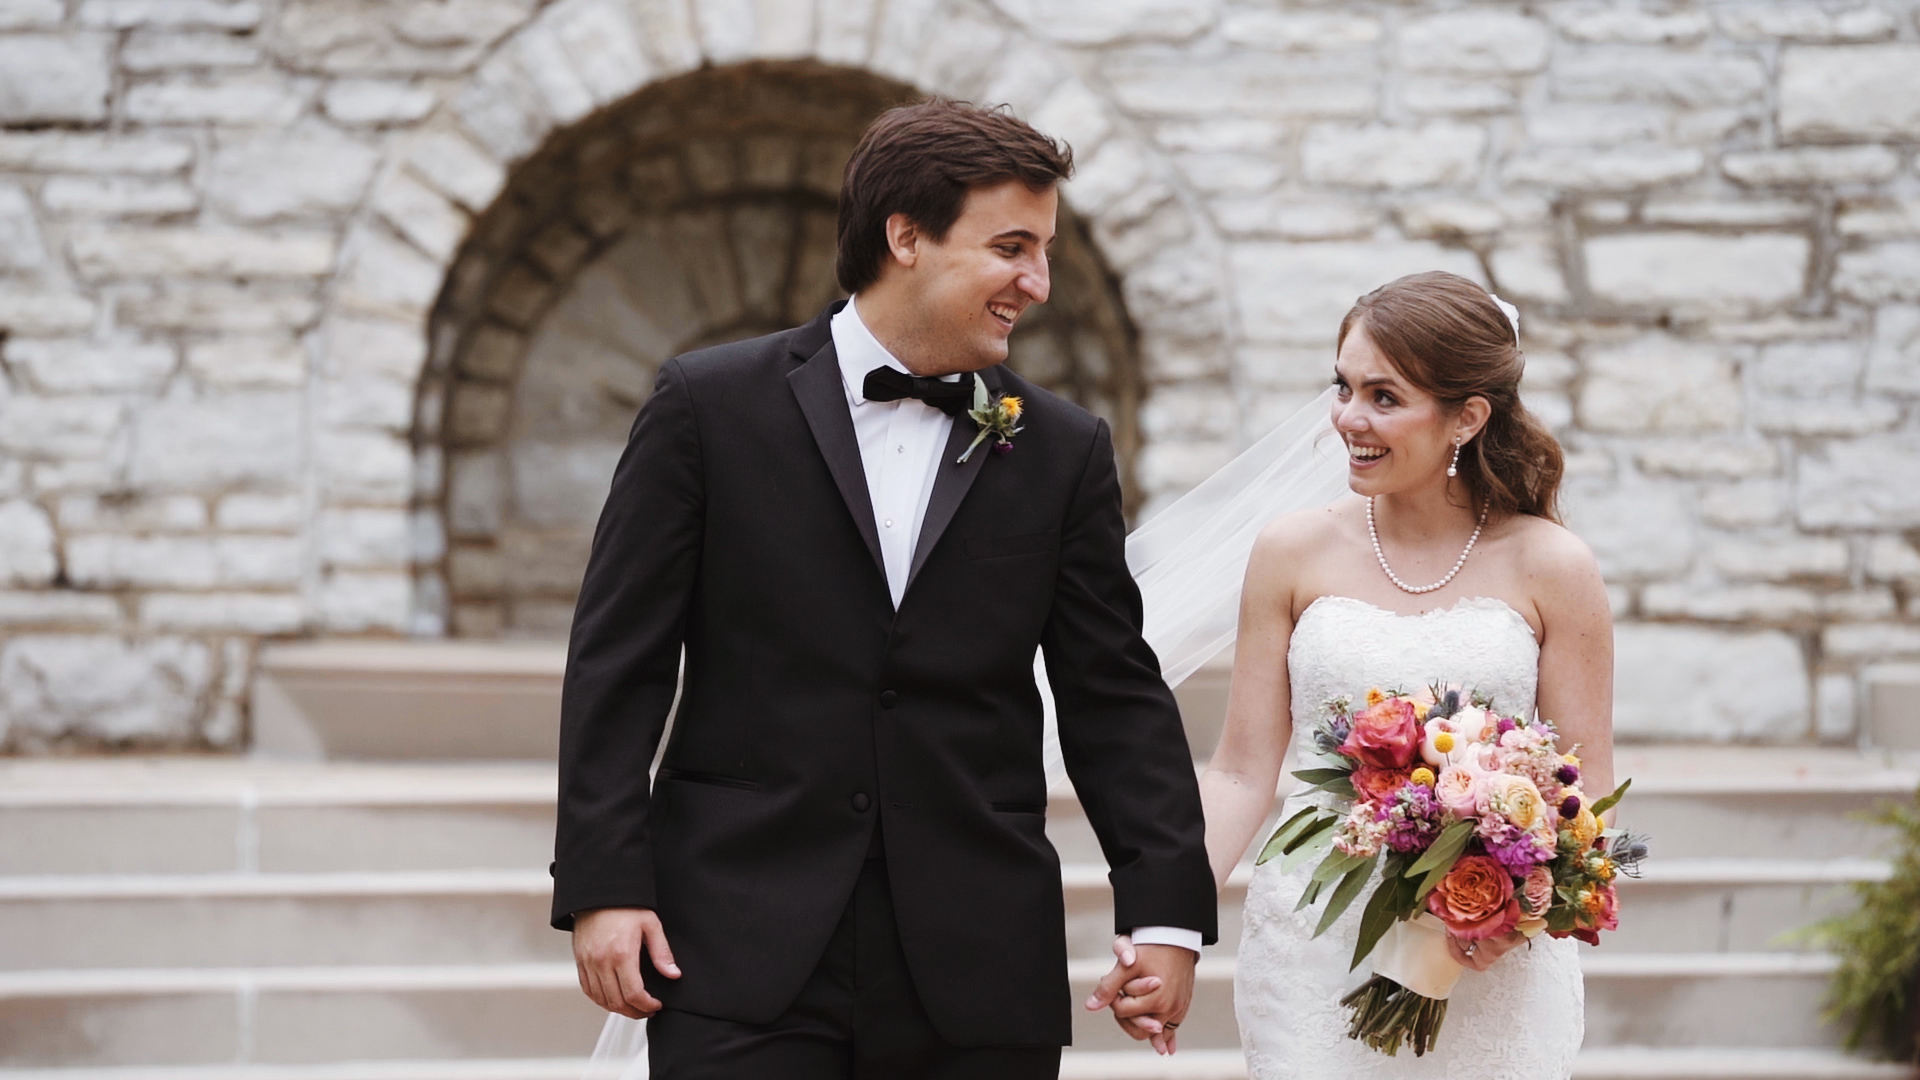 ellie and jake's st louis wedding video